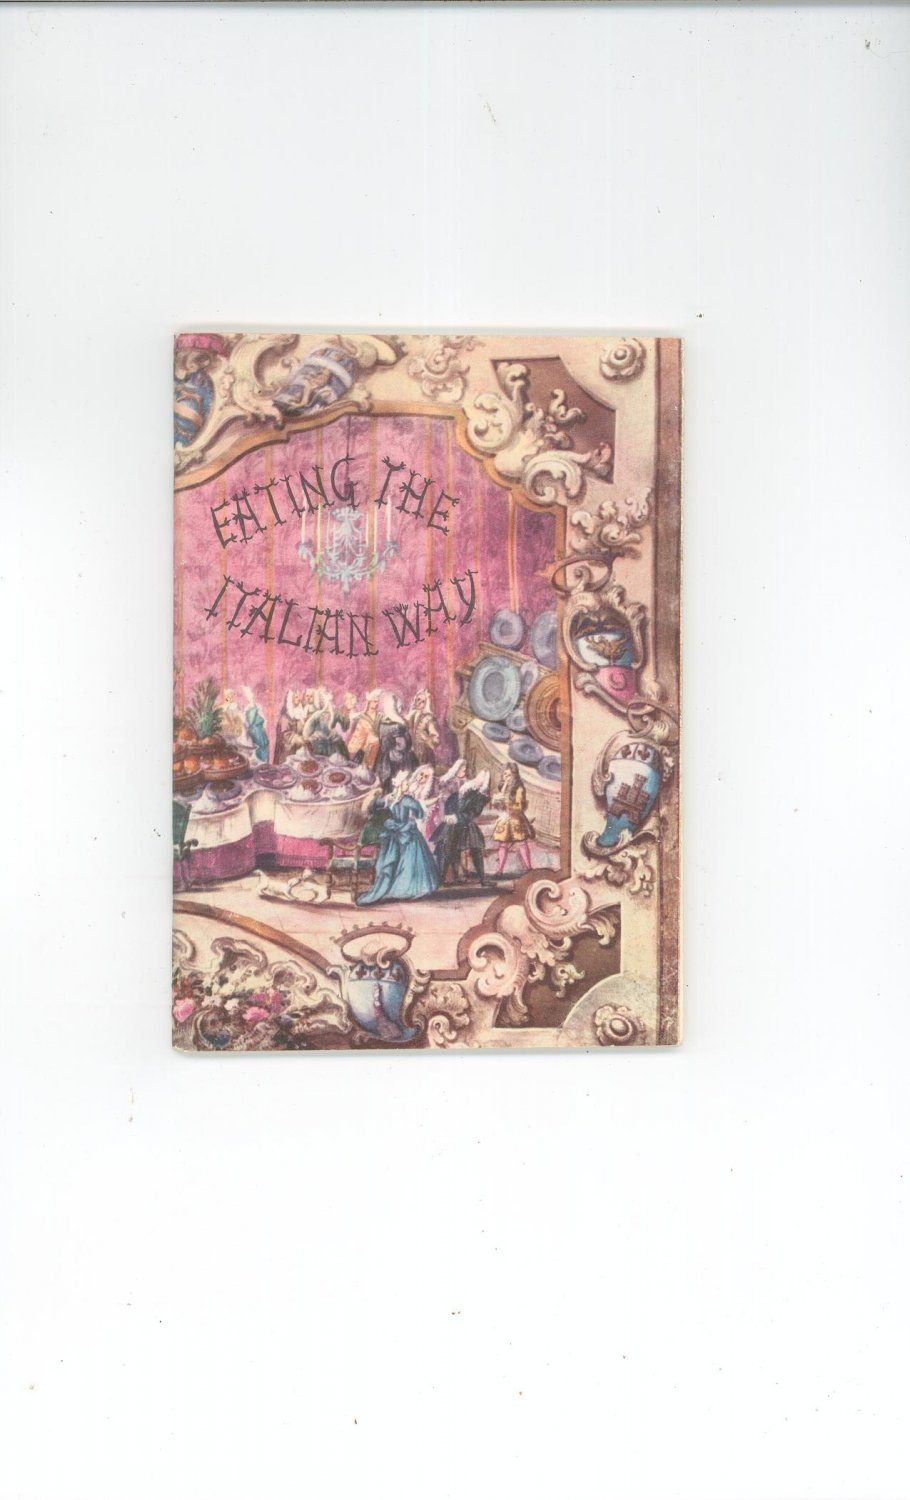 Vintage Eating The Italian Way Guide By Gino Tani For Italian Tourist Department